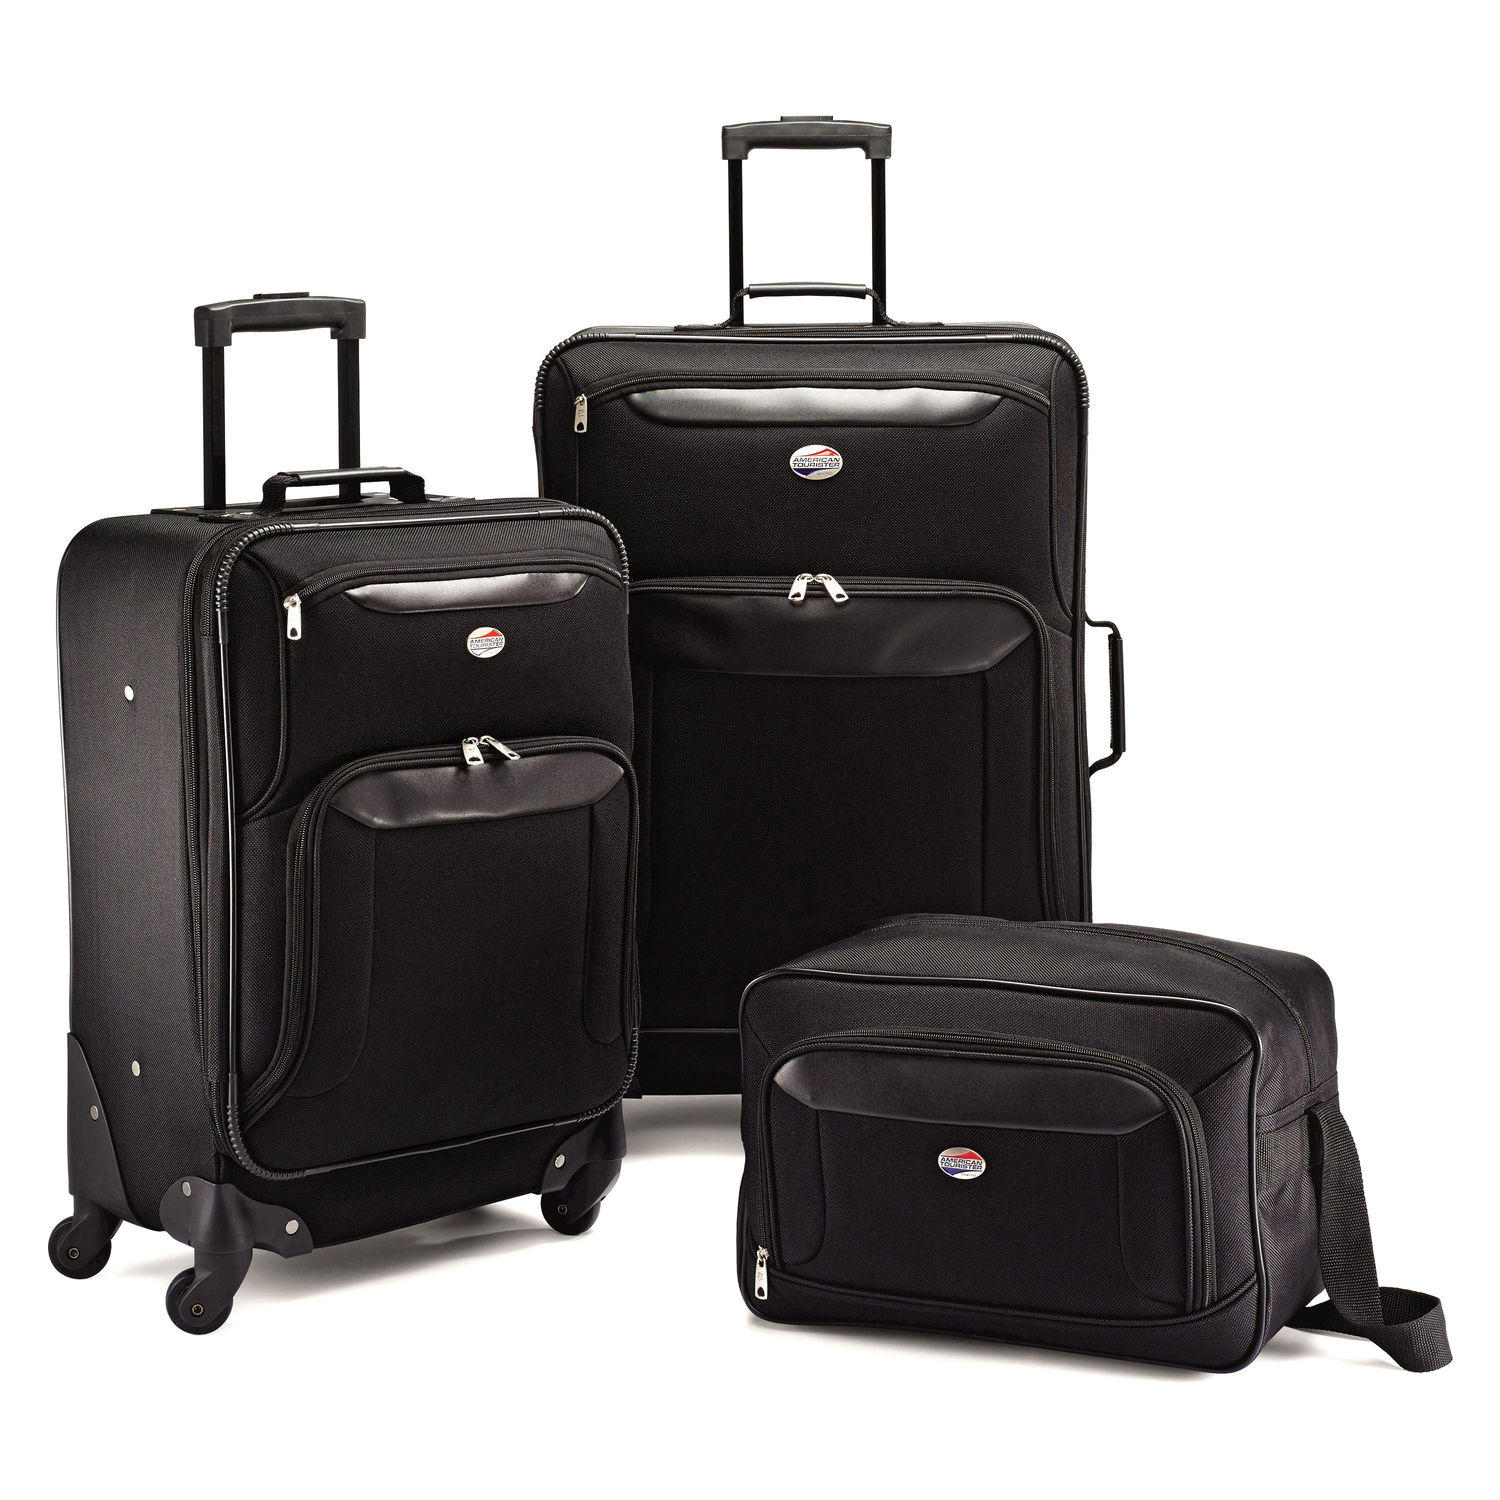 American Tourister Brookfield 3-pc. Set